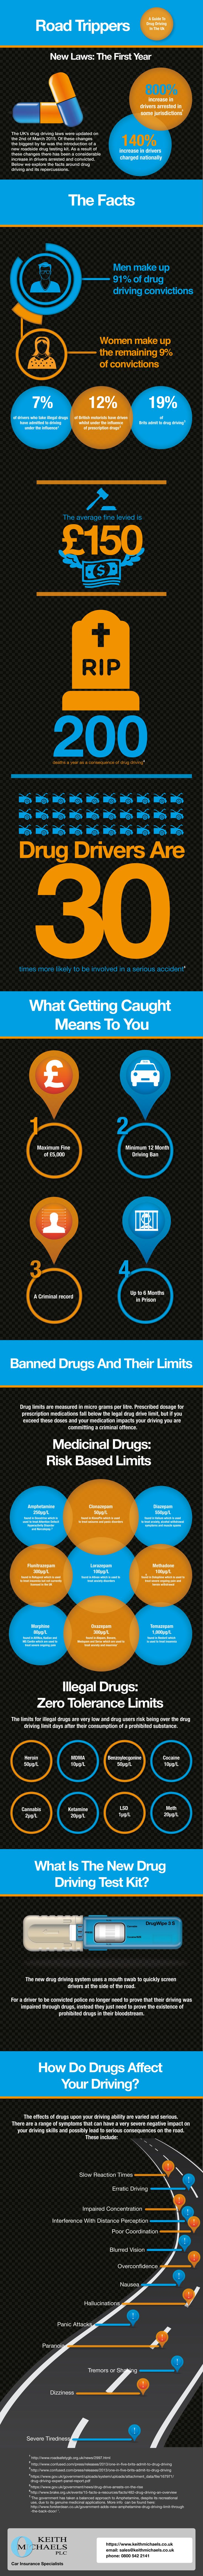 Road Trippers: Drug Driving in the UK